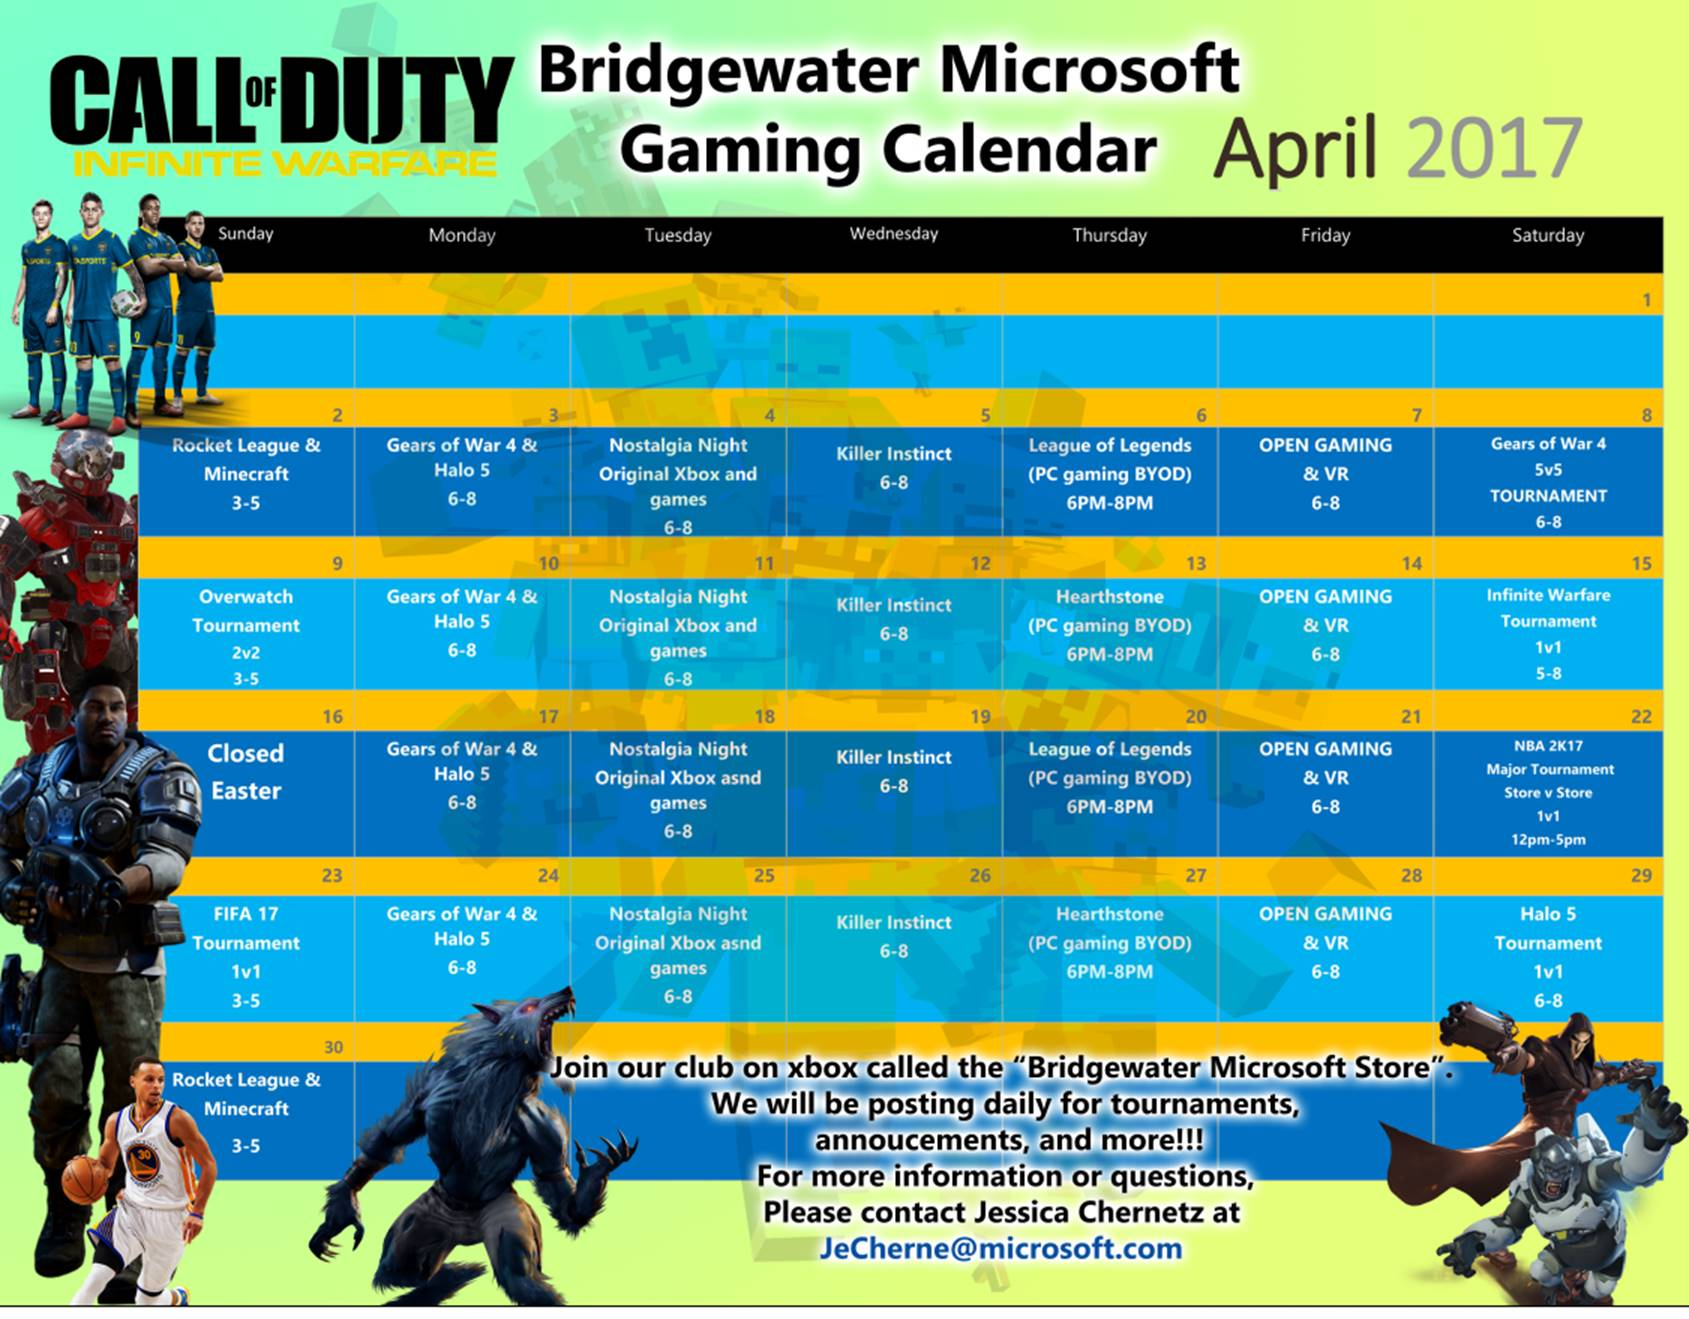 Microsoft Gaming Events For April